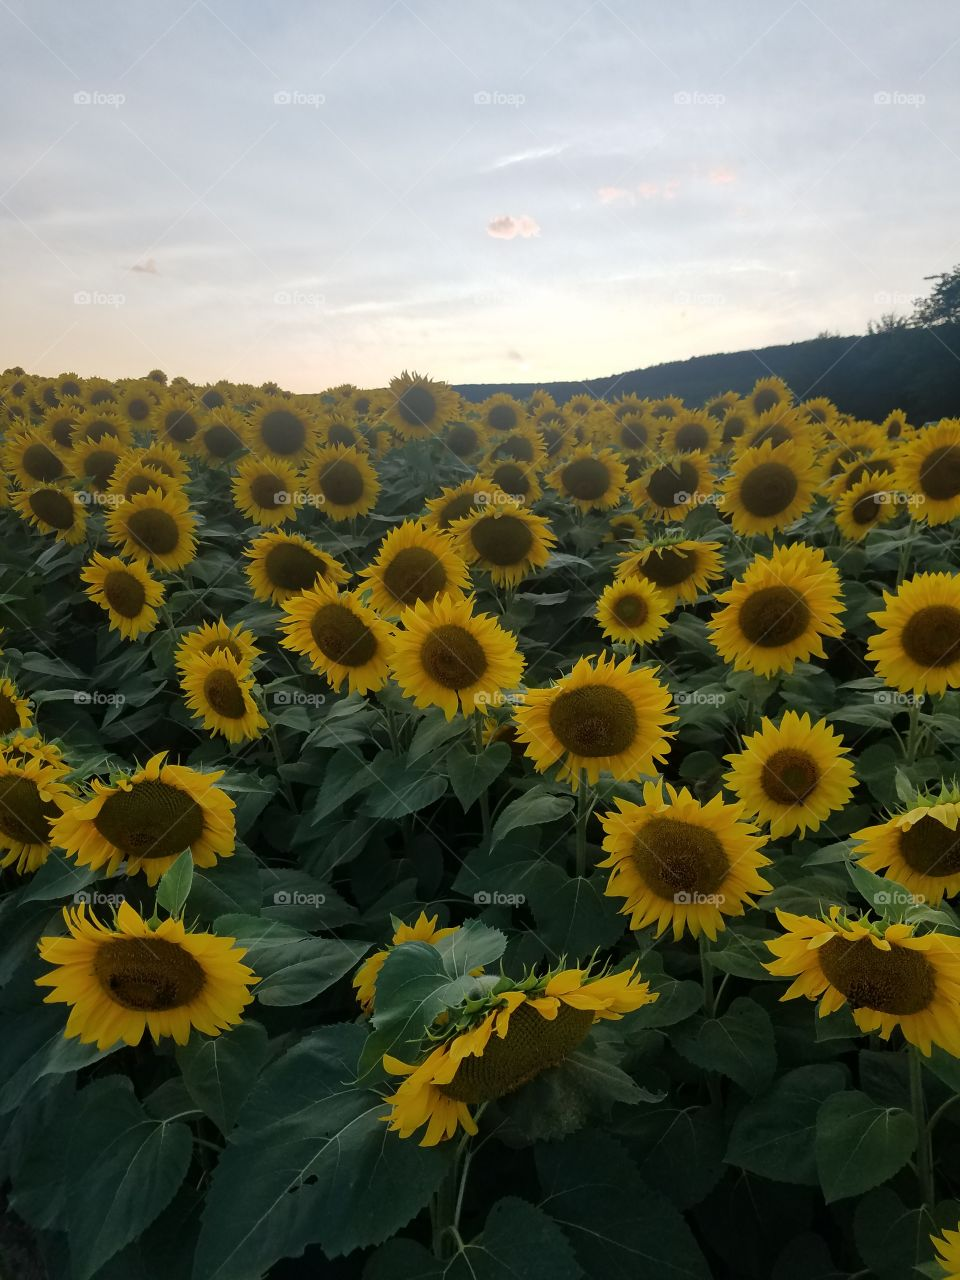 Sunflower Field at Penns Cave & Wildlife Park in PA